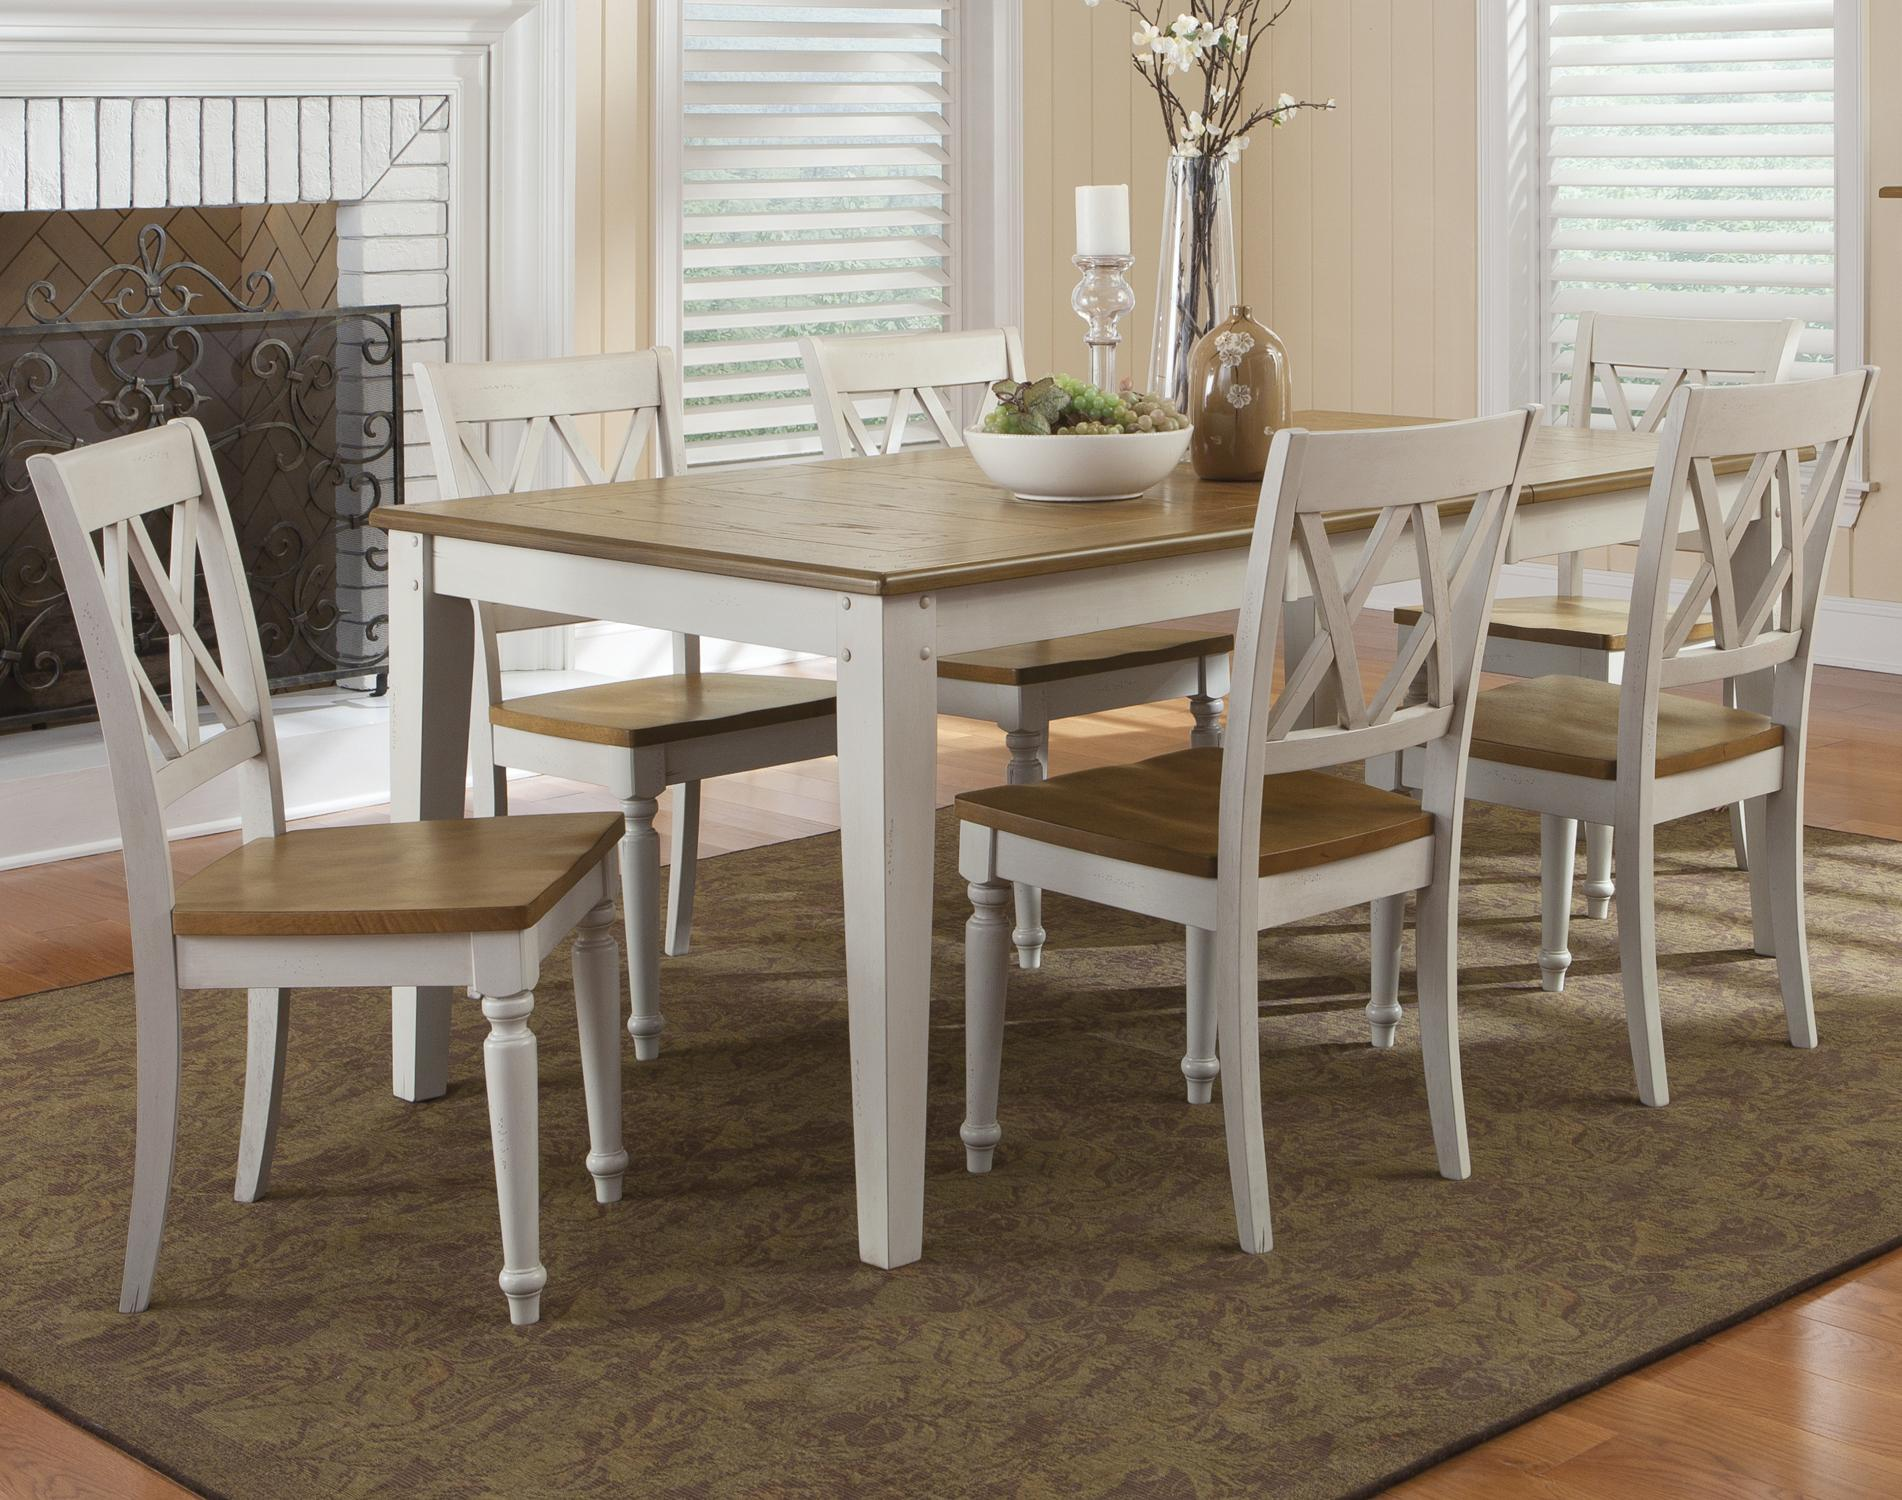 Al Fresco III 7 Piece Rectangular Table and Chairs Set by Liberty Furniture at Suburban Furniture